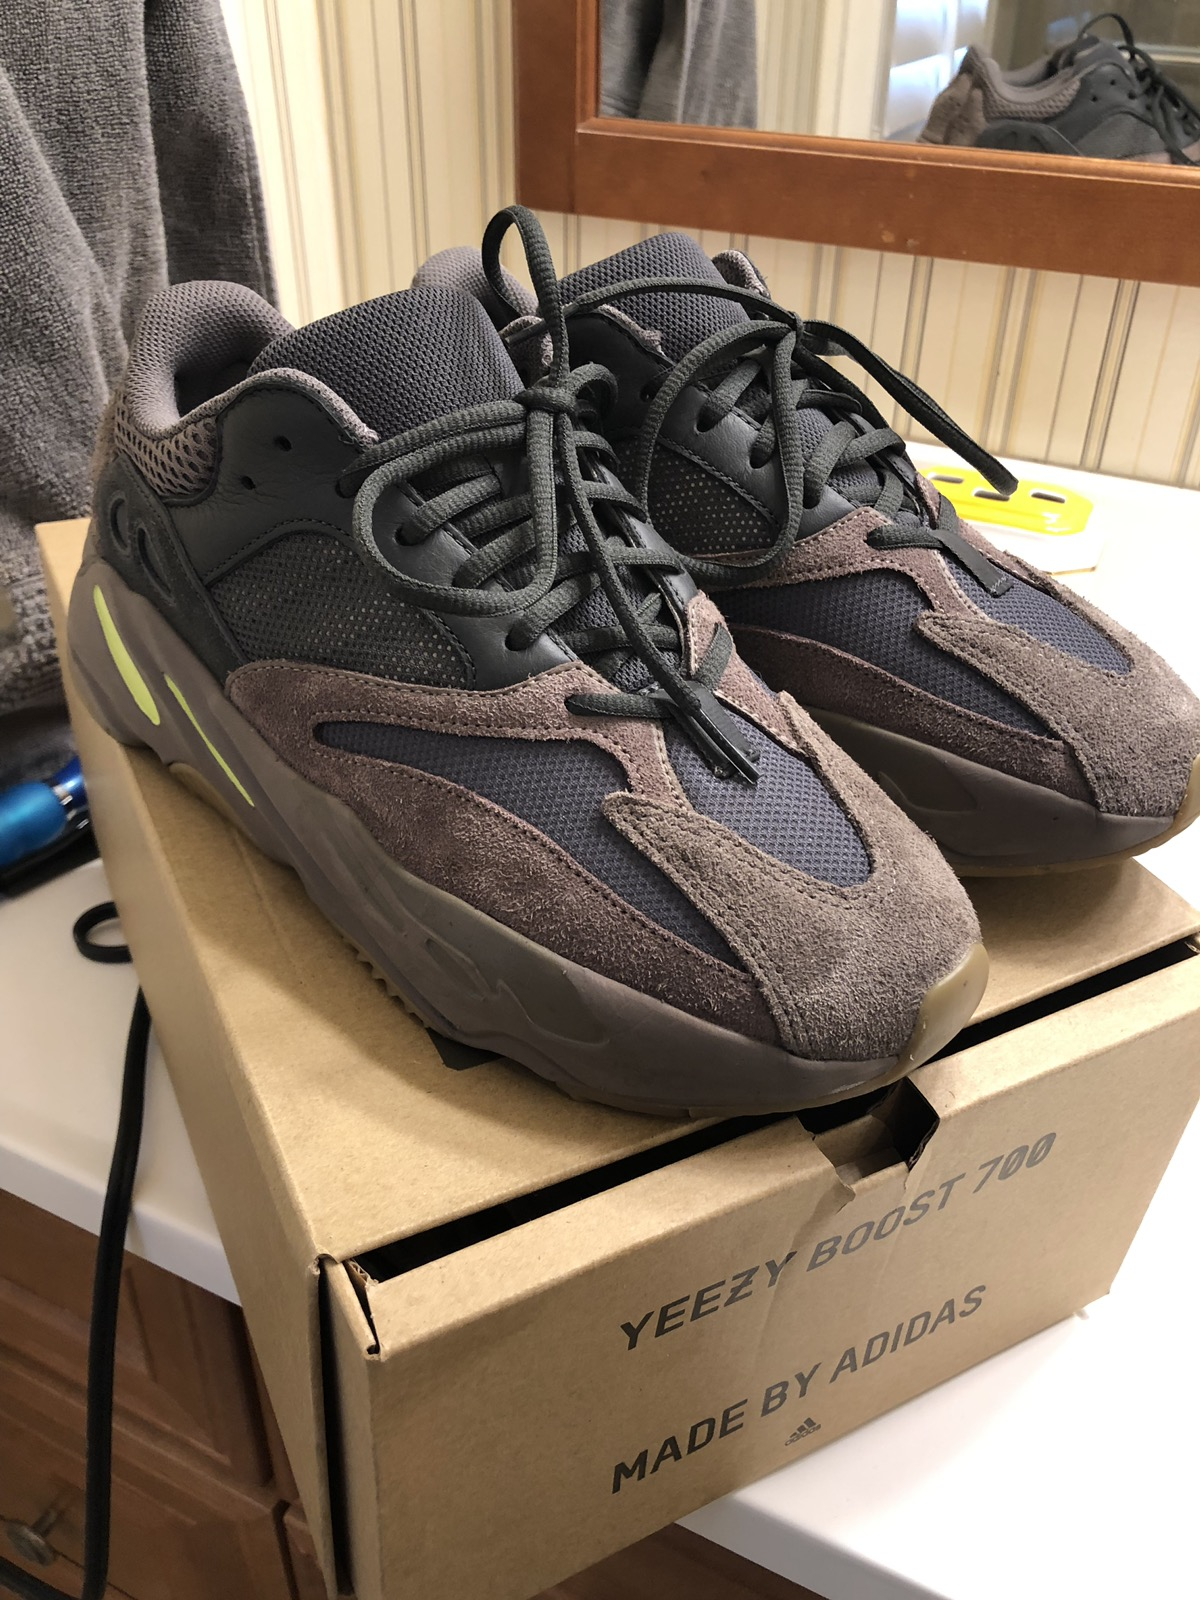 5d386cdfa0ee00 Adidas Kanye West (STEAL) Yeezy Mauve Size 9 - Low-Top Sneakers for Sale -  Grailed